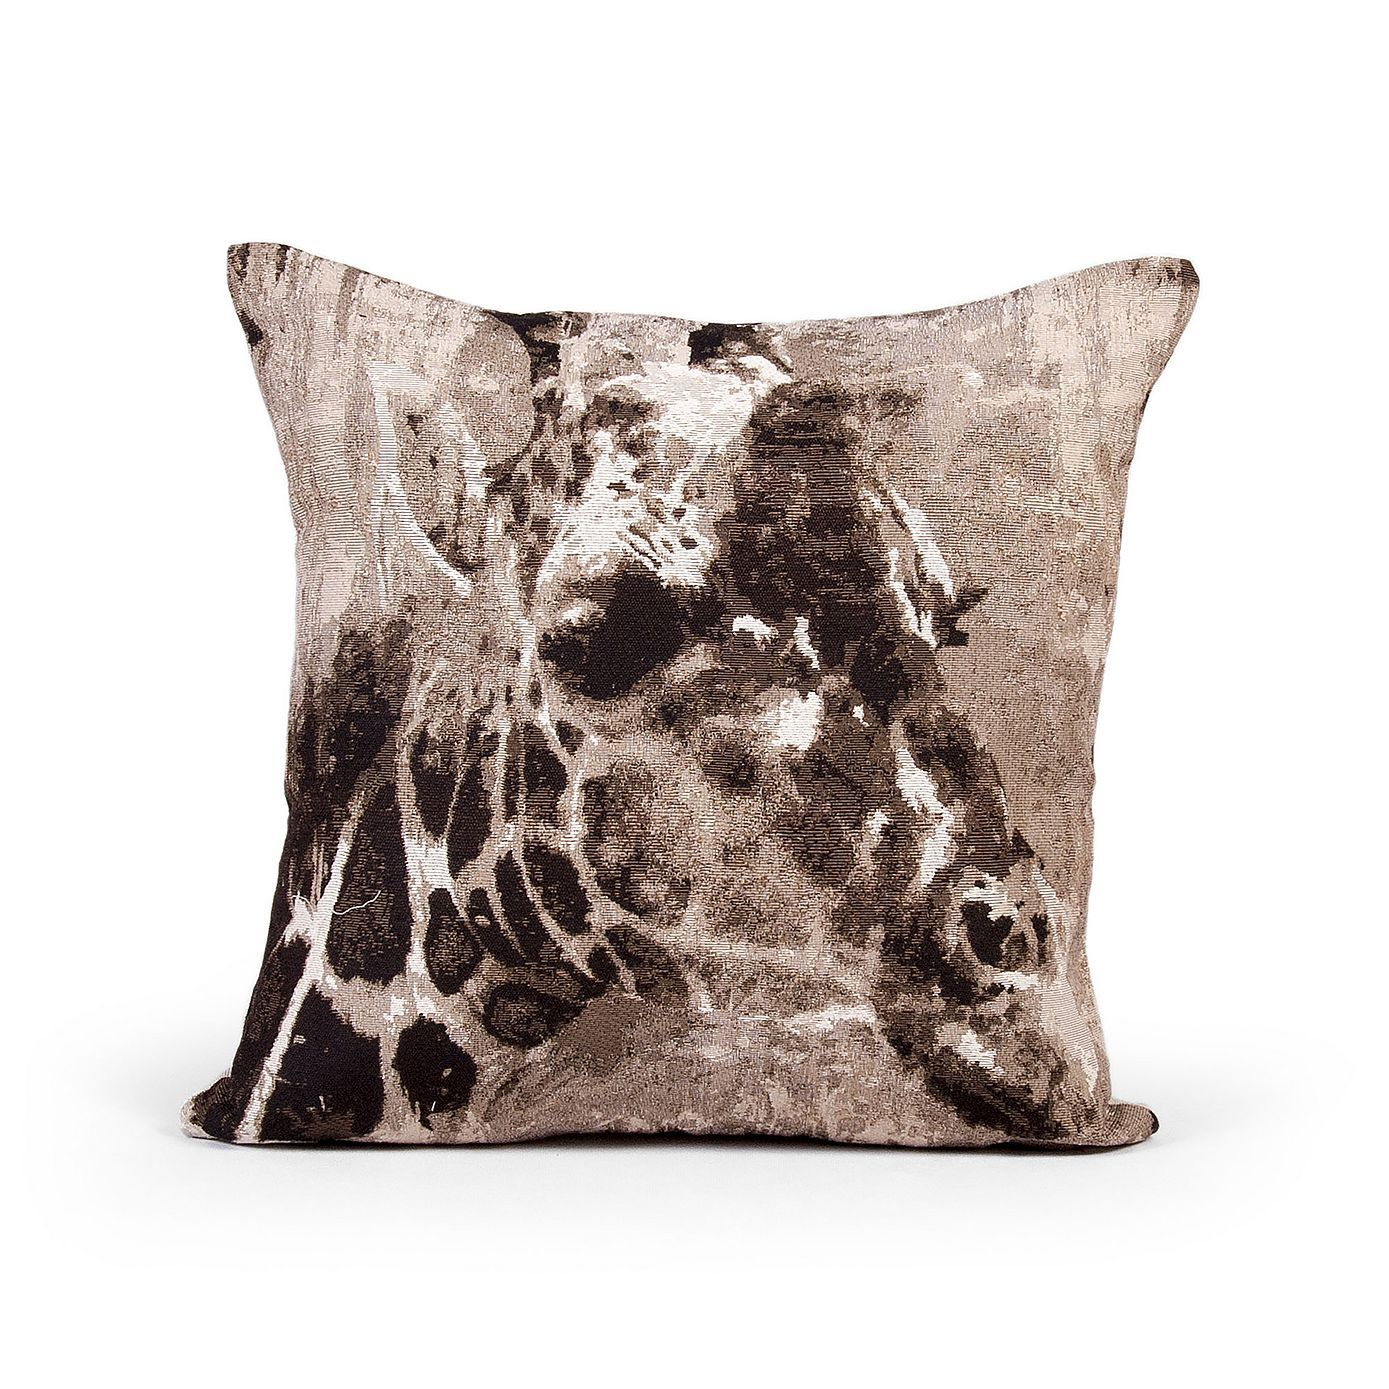 Black Giraffe Tapestry Cushion Dunelm animal kingdom